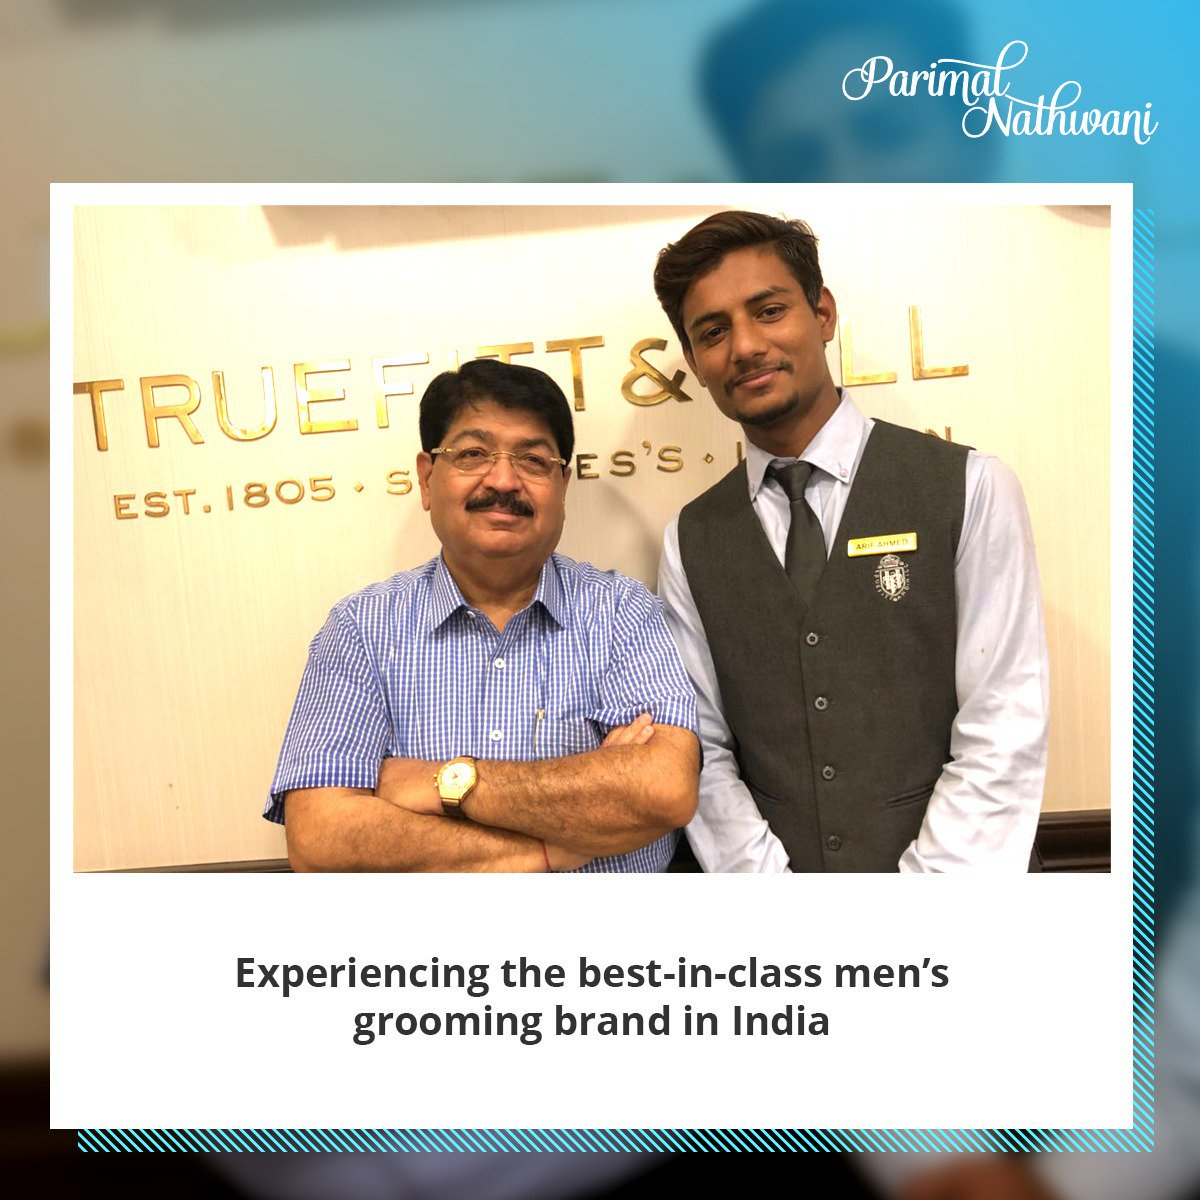 With renowned hair dresser Arif Ahmed of @TruefittHill at #Ahmedabad, renowned service provider with outlets in Mumbai, Delhi, Chennai etc, has been brought to Gujarat by Gautam Teotia. It was a nice experience as it offered an exclusive and a new level of luxury service. <br>http://pic.twitter.com/yWLmbuXepK